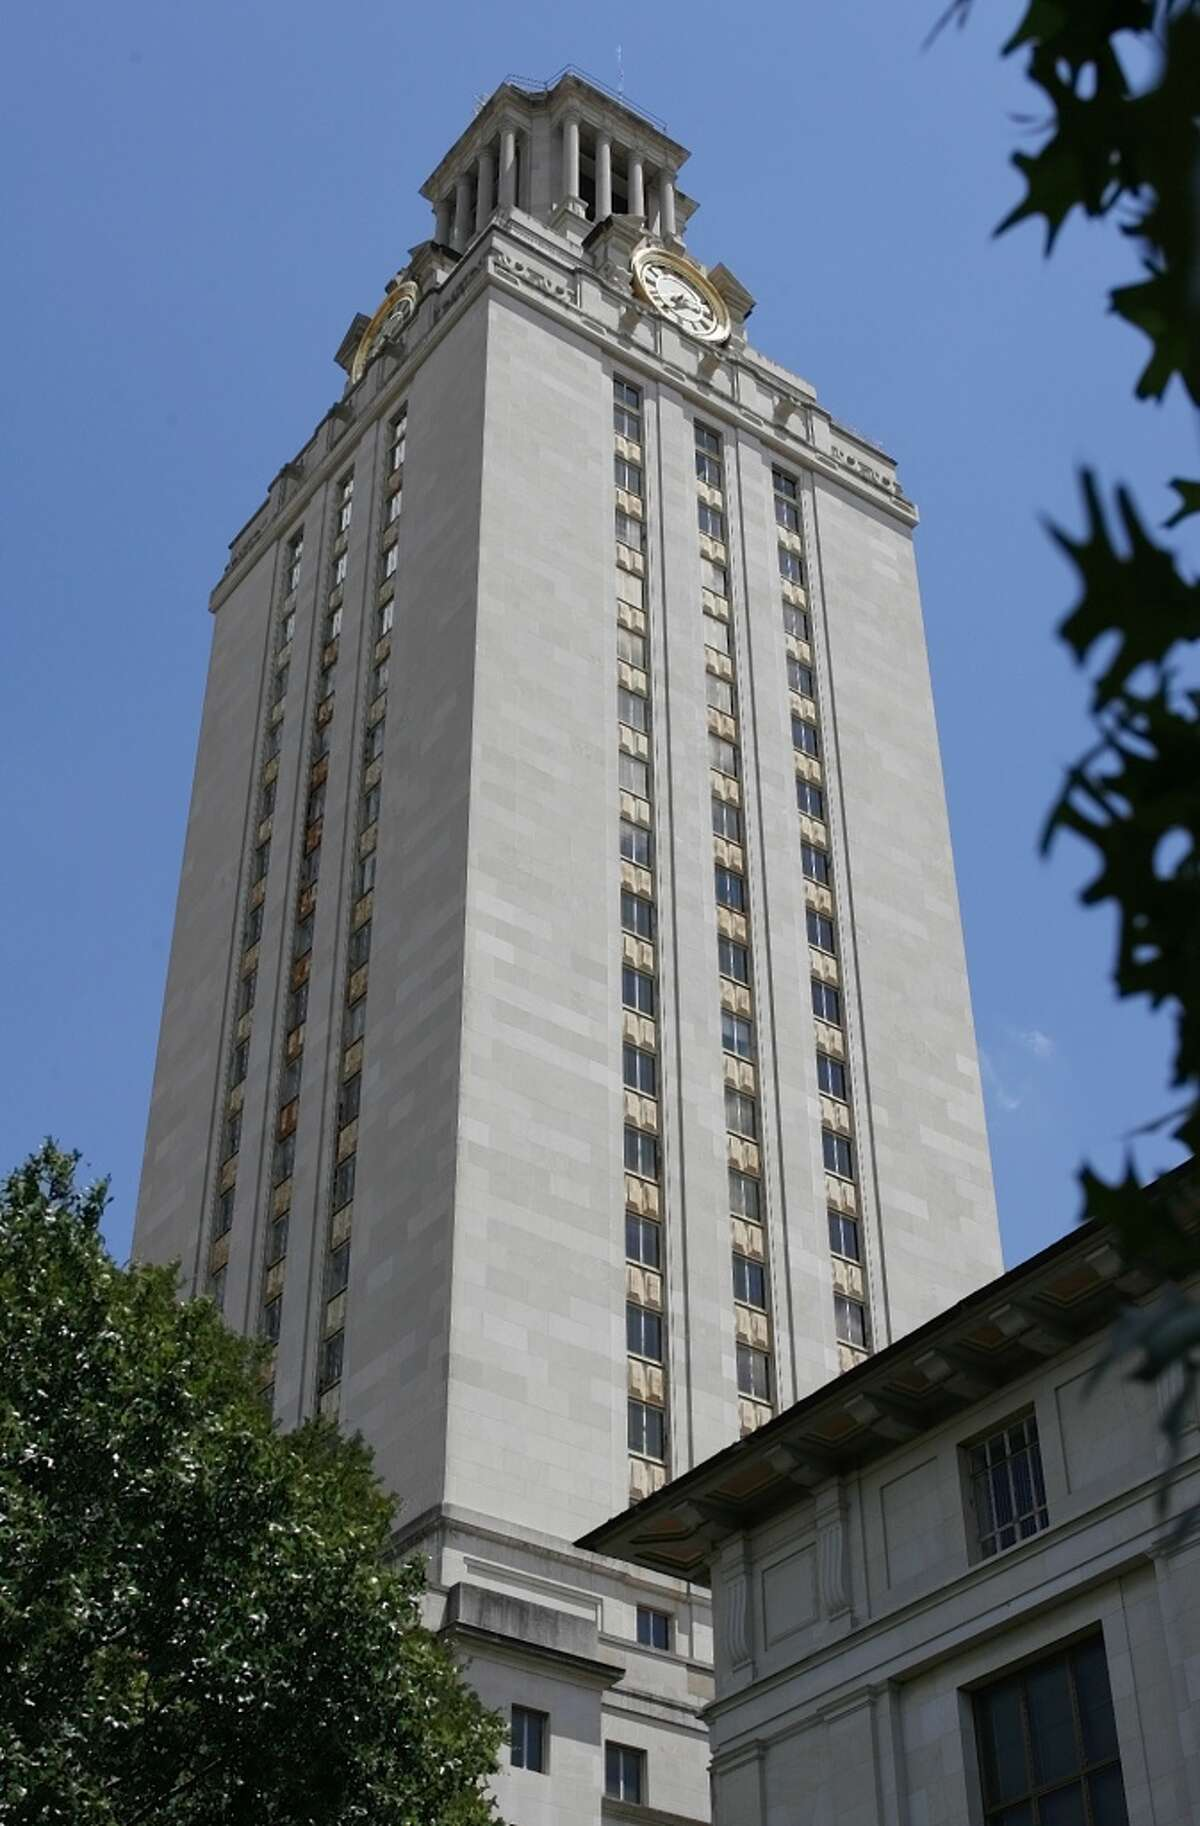 The University of Texas Tower. Charles Whitman fired shots from the observation deck of the tower Aug. 1, 1966.